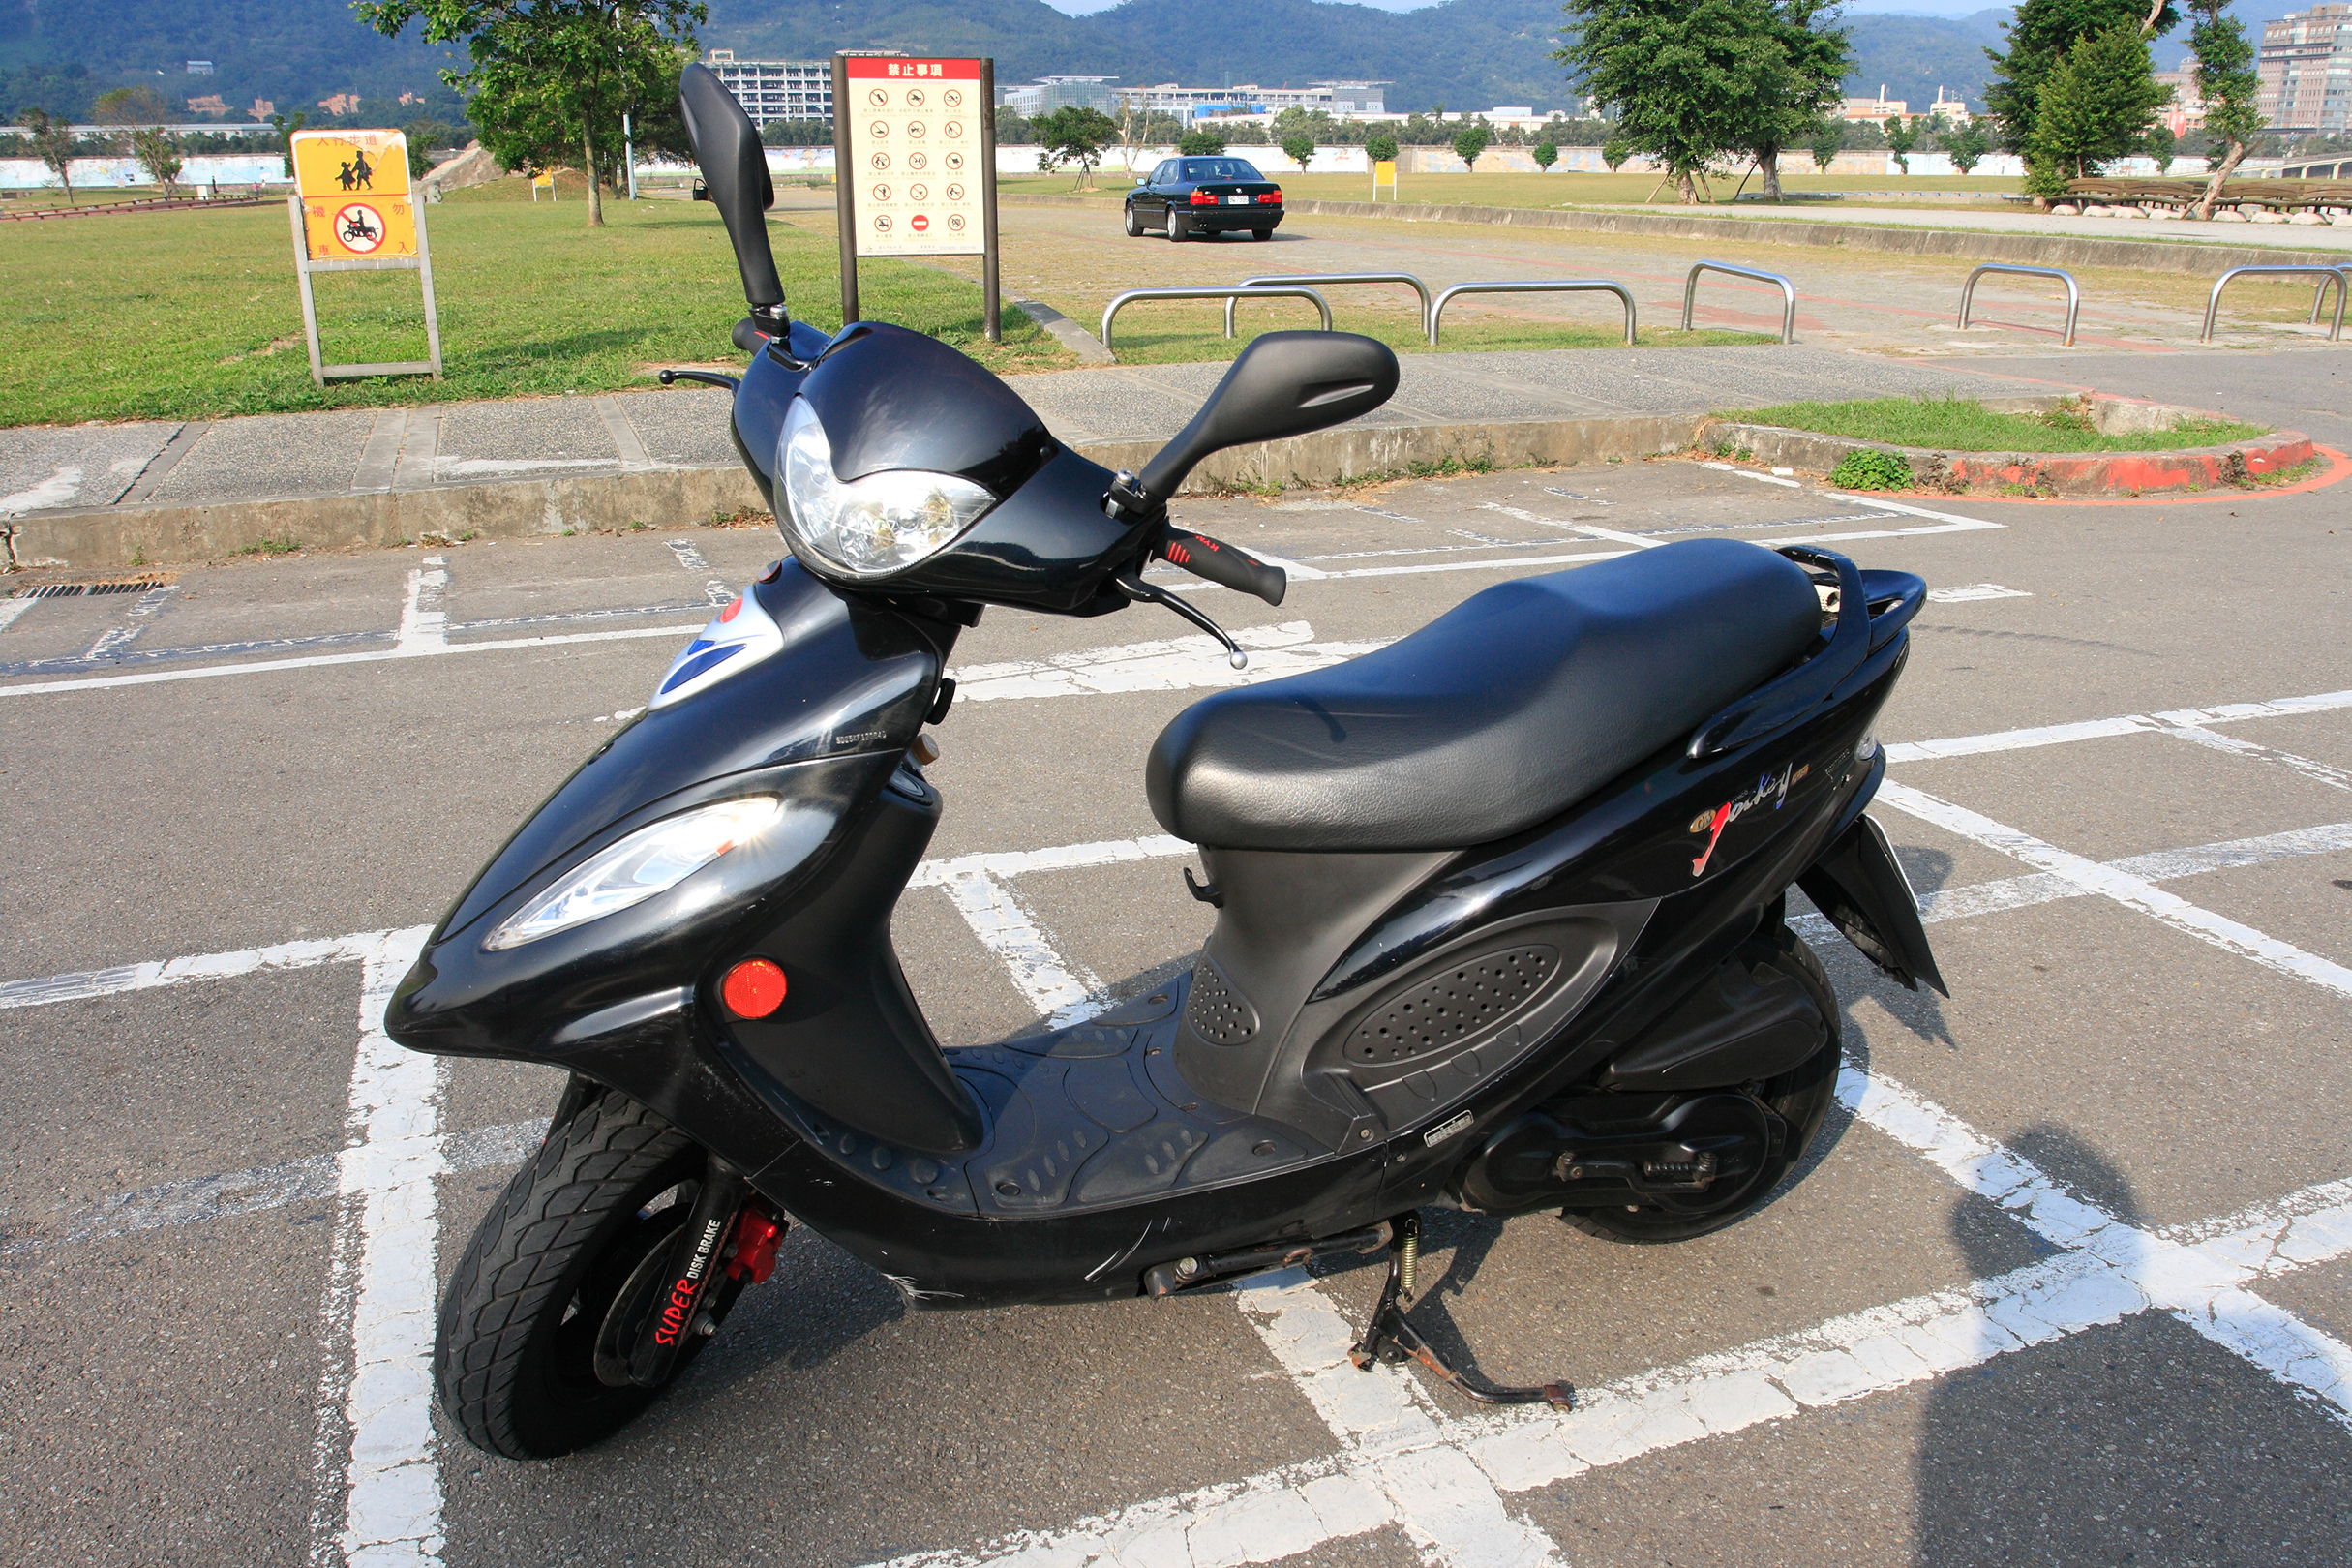 Kymco Wikipedia 2008 Wiring Diagram G3